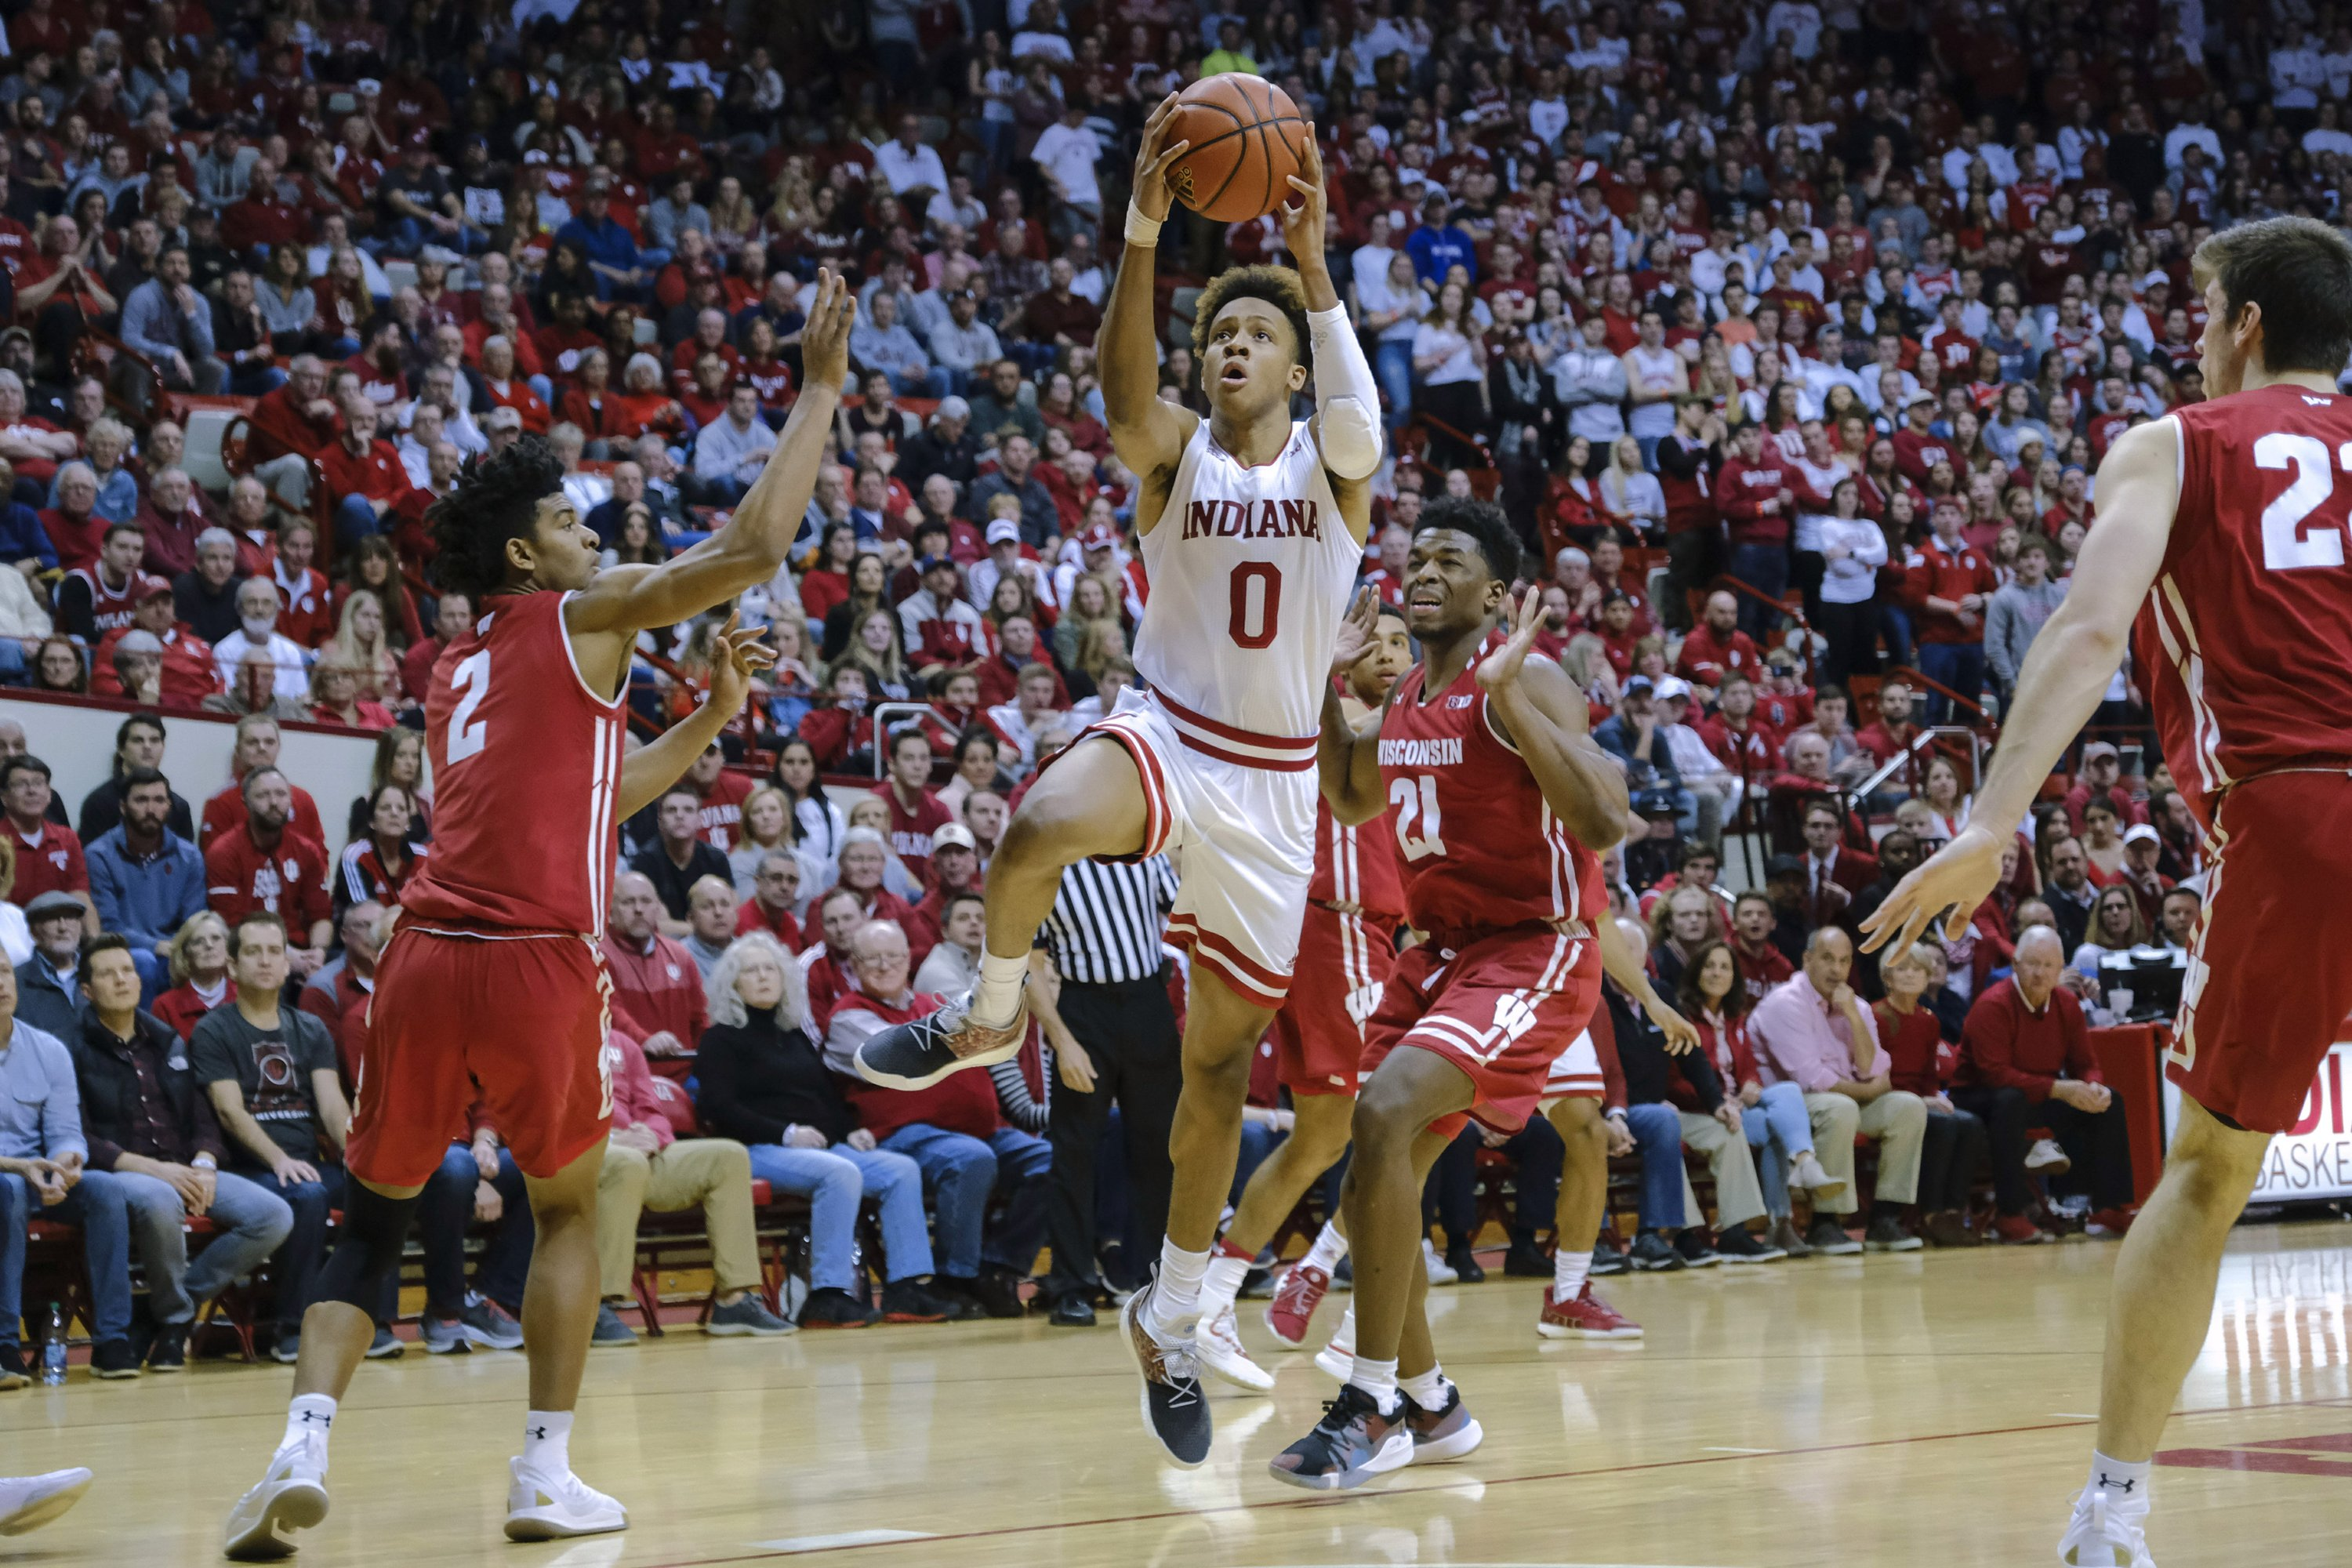 Freshman Langford's layup with .7 left takes down No. 19 Badgers in 2OT